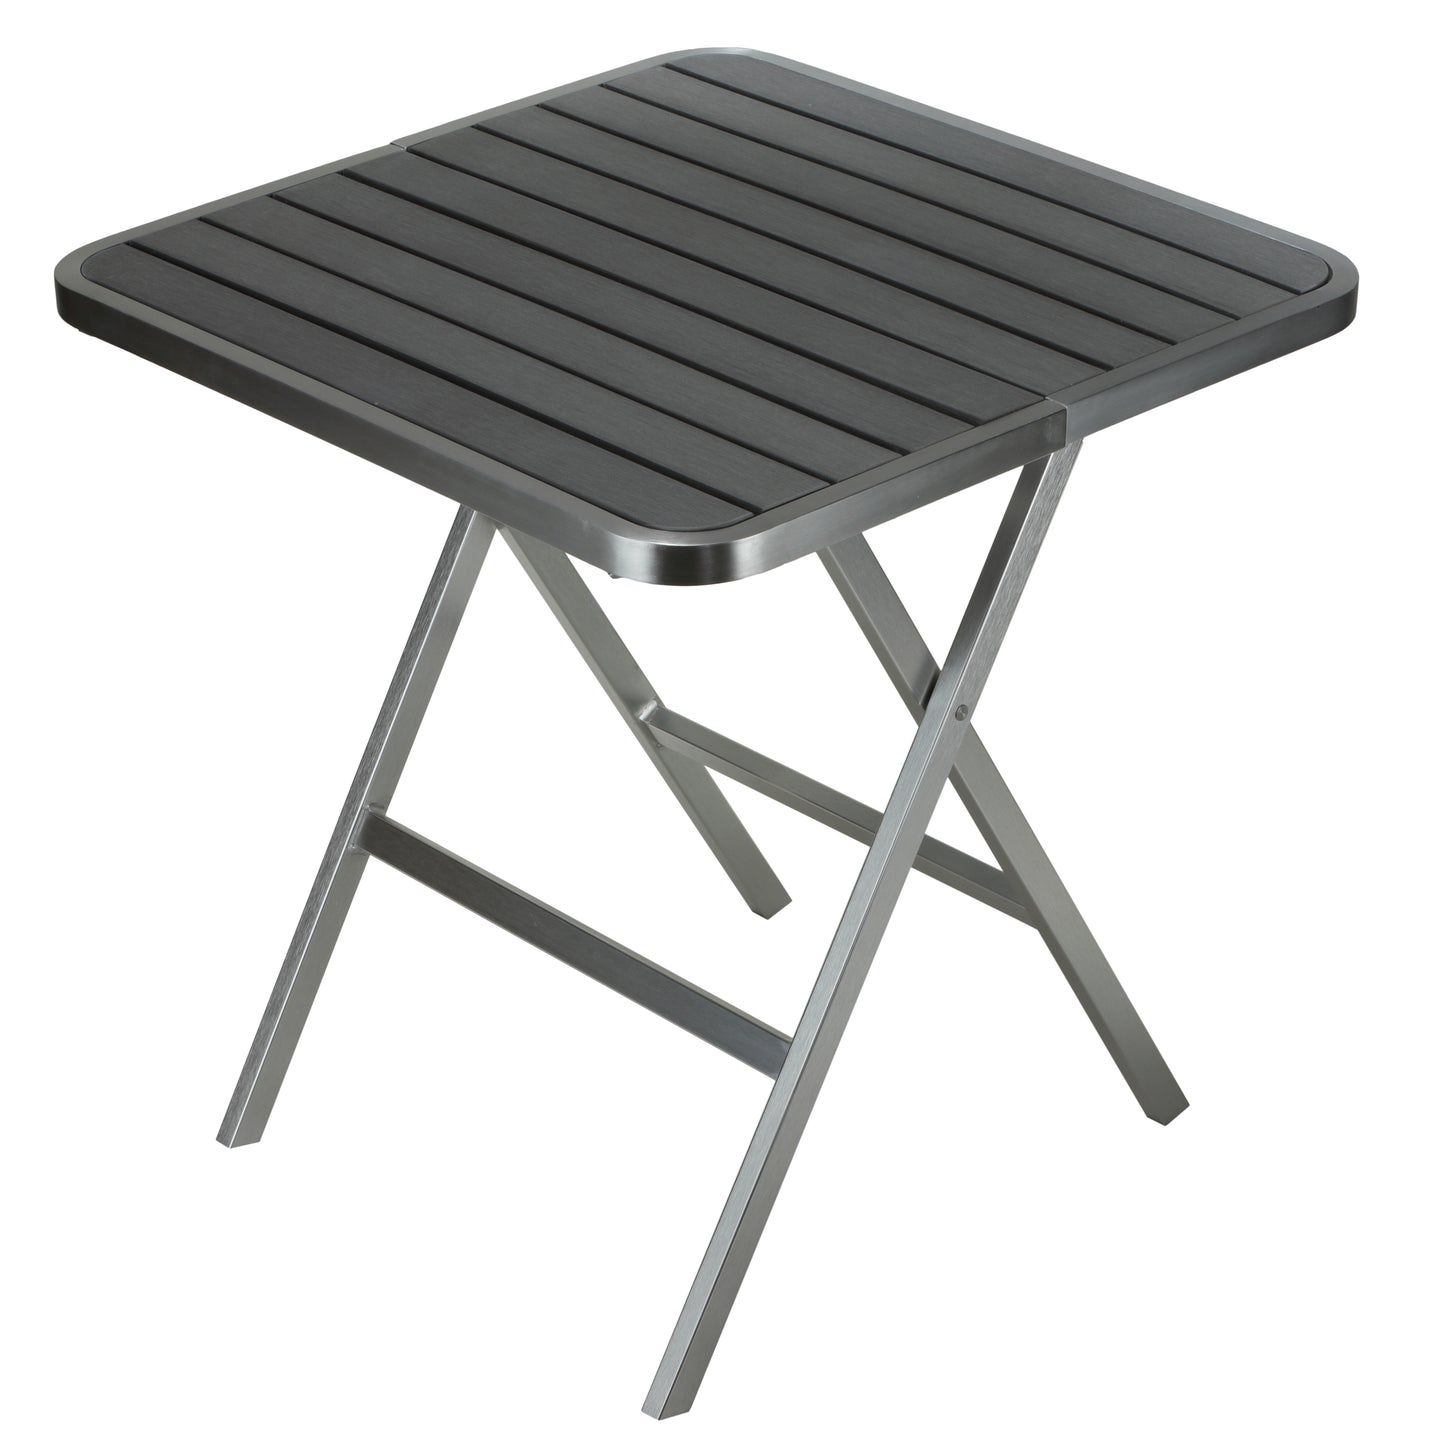 Cortesi Home Maxwell Aluminum Outdoor Square Folding Table in Poly Resin, Brushed Aluminum / Slate Grey 28